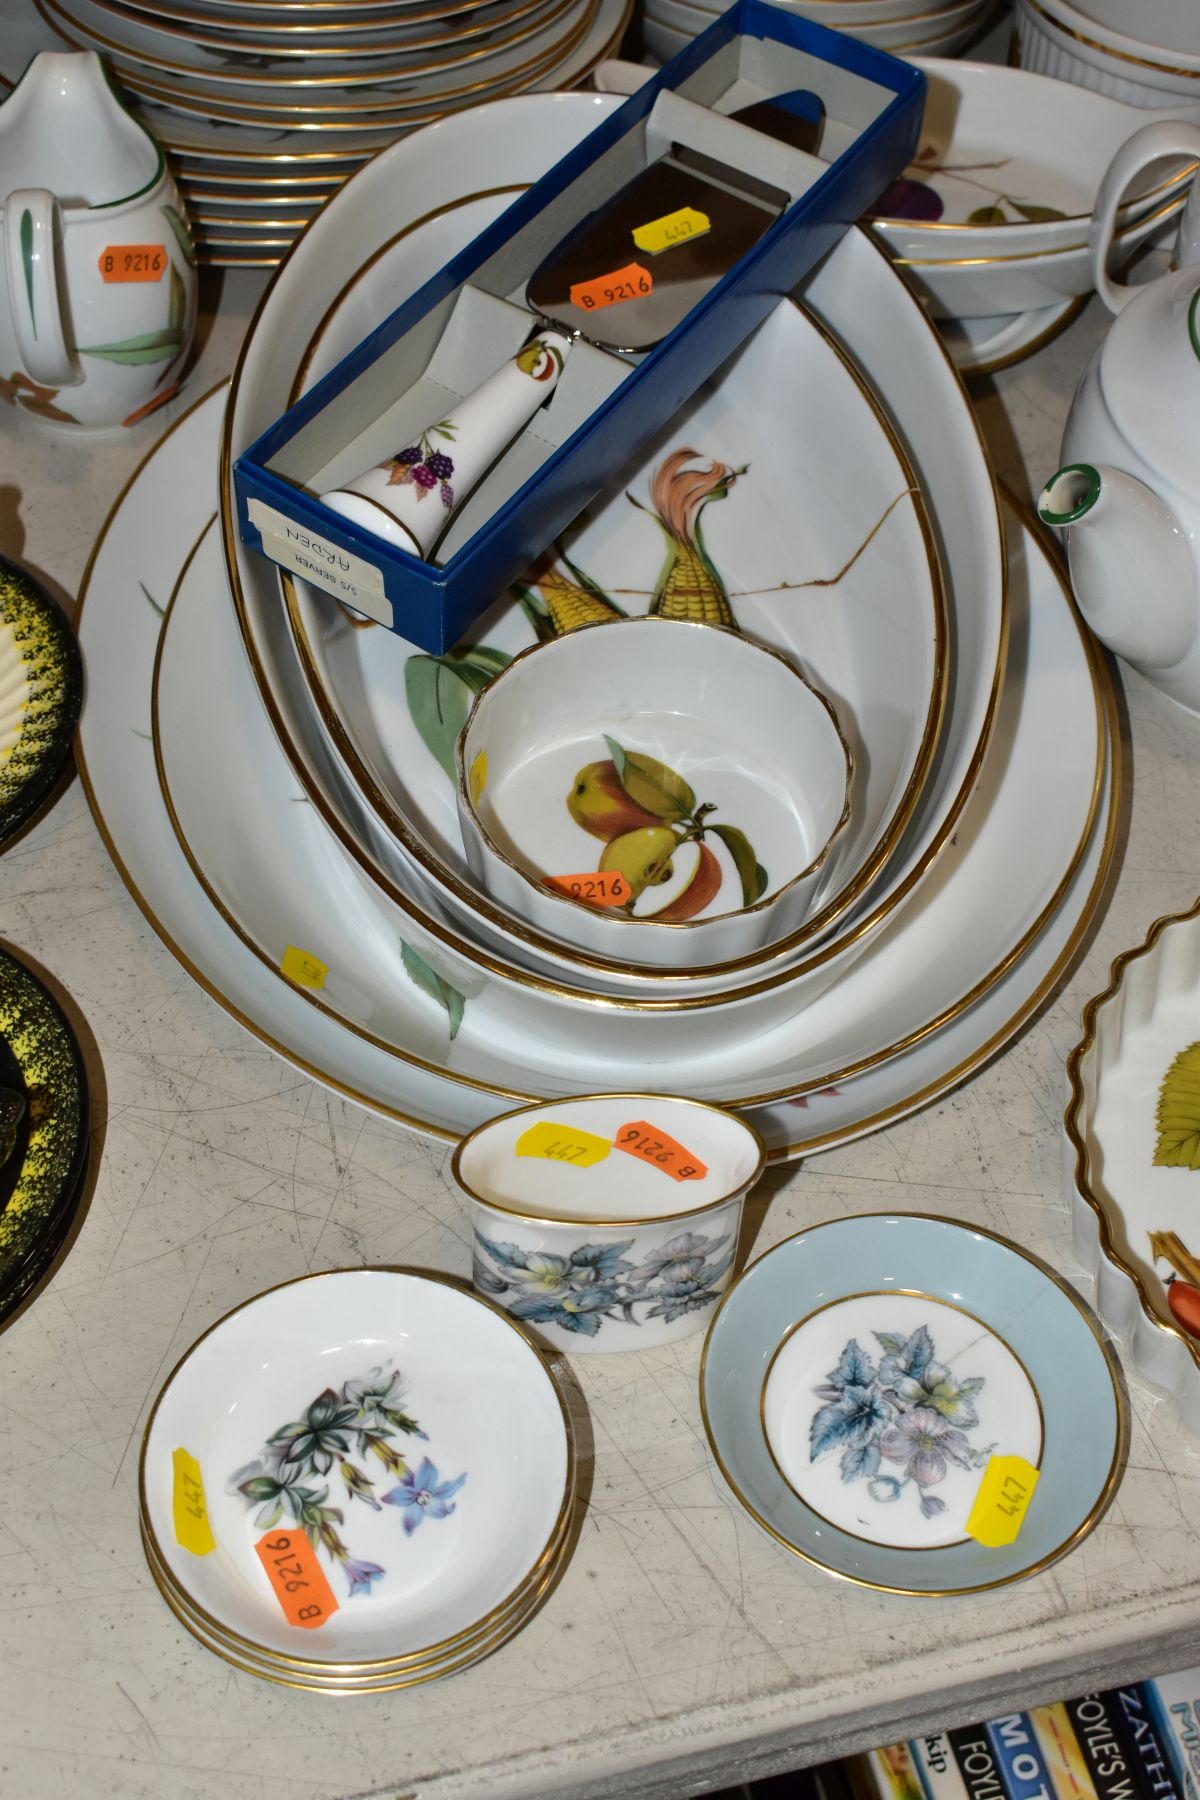 A QUATITY OF ROYAL WORCESTER 'EVESHAM' TABLEWARES, to include tureens, souffle dishes, meat - Image 4 of 9